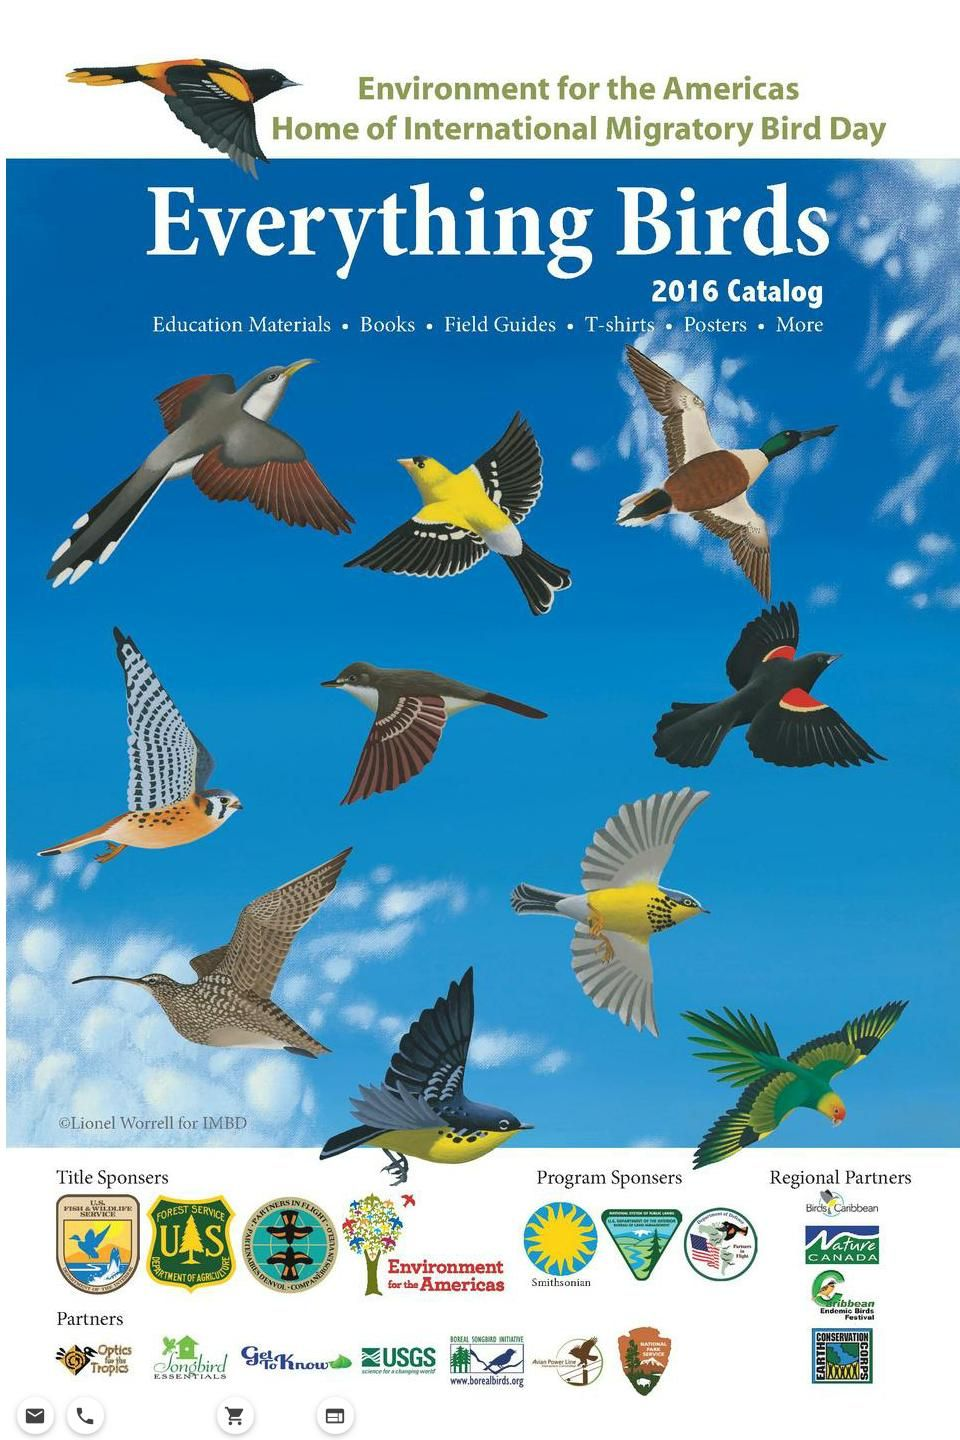 Oct 8 2016 International Migratory Bird Day 2016 Imbd Because Birds Do Not Migrate On The Same Day Imbd Is Celebrated Migratory Birds Field Guide Fauna